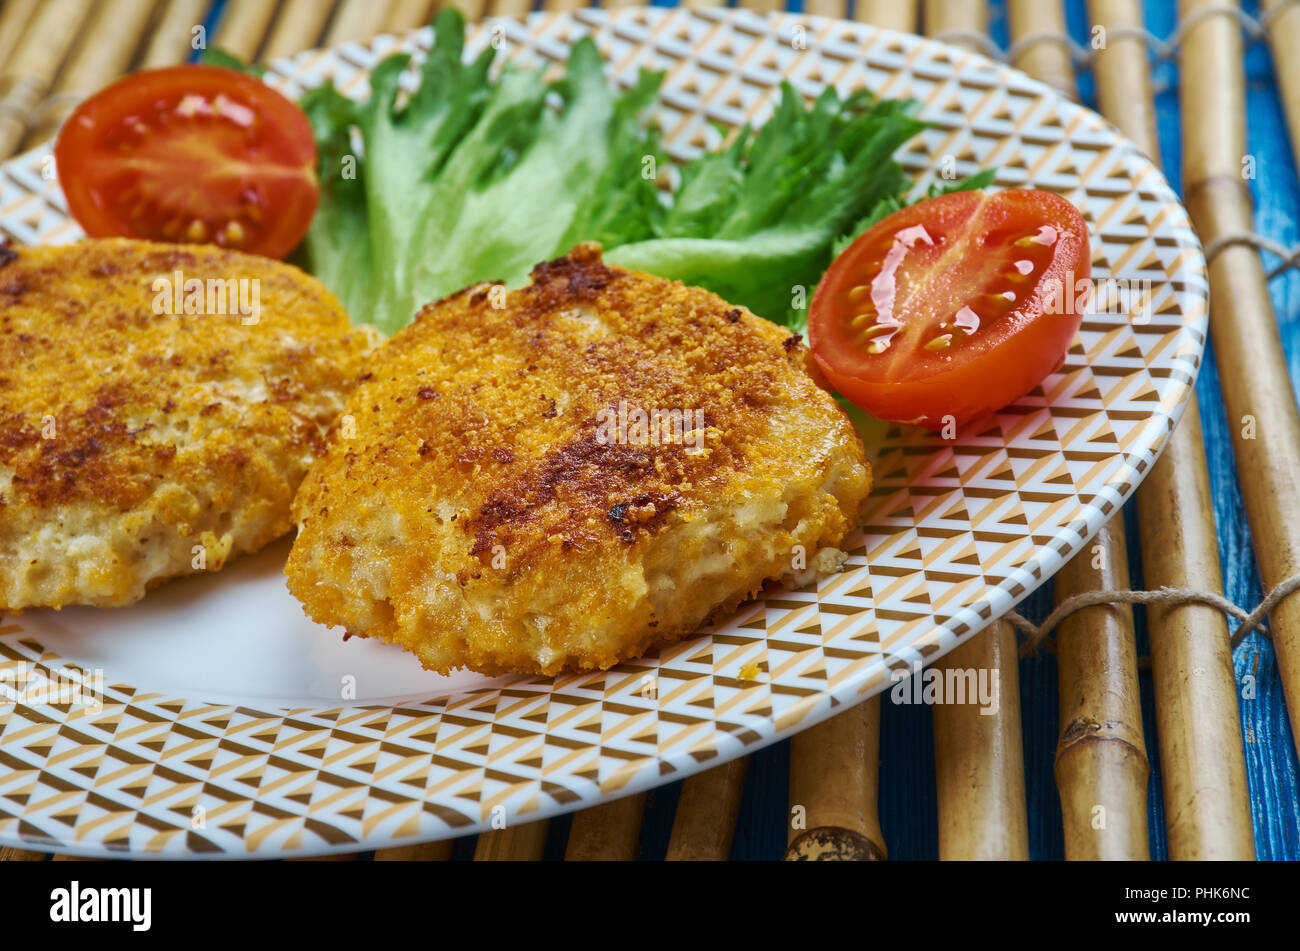 Acadian Food Stock Photos & Acadian Food Stock Images - Alamy on polish food, mi'kmaq food, colonial food, british food, haitian food, swedish food, iranian food, brittany france food, scottish food, english food, egyptian food, dutch food, african food, hungarian food, black food, baton rouge food, ukrainian food, austin food, montana food, syrian food,